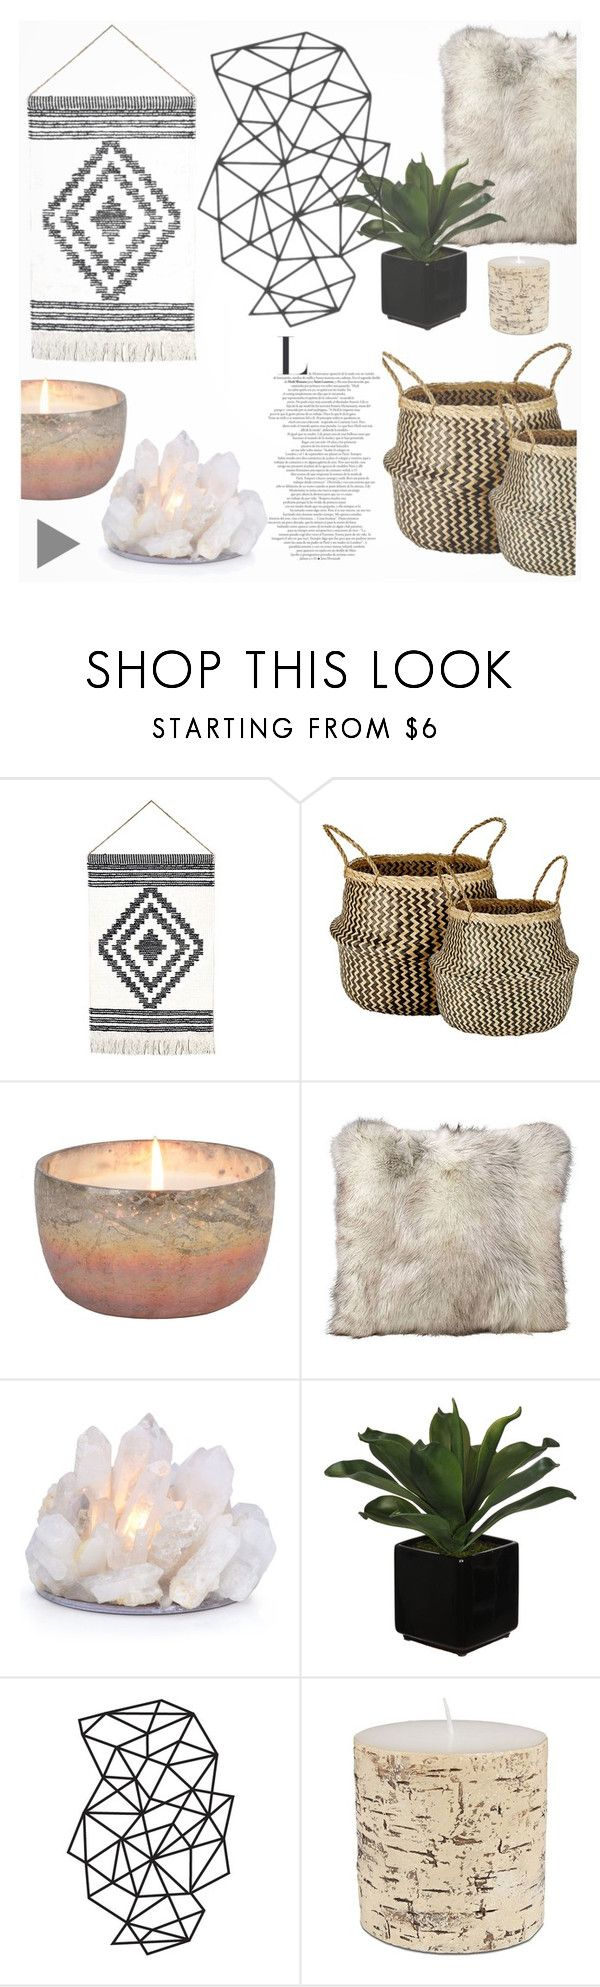 """Quartz"" by southernpearldesigns on Polyvore featuring interior, interiors, interior design, home, home decor, interior decorating, Murmur and Lord & Taylor"